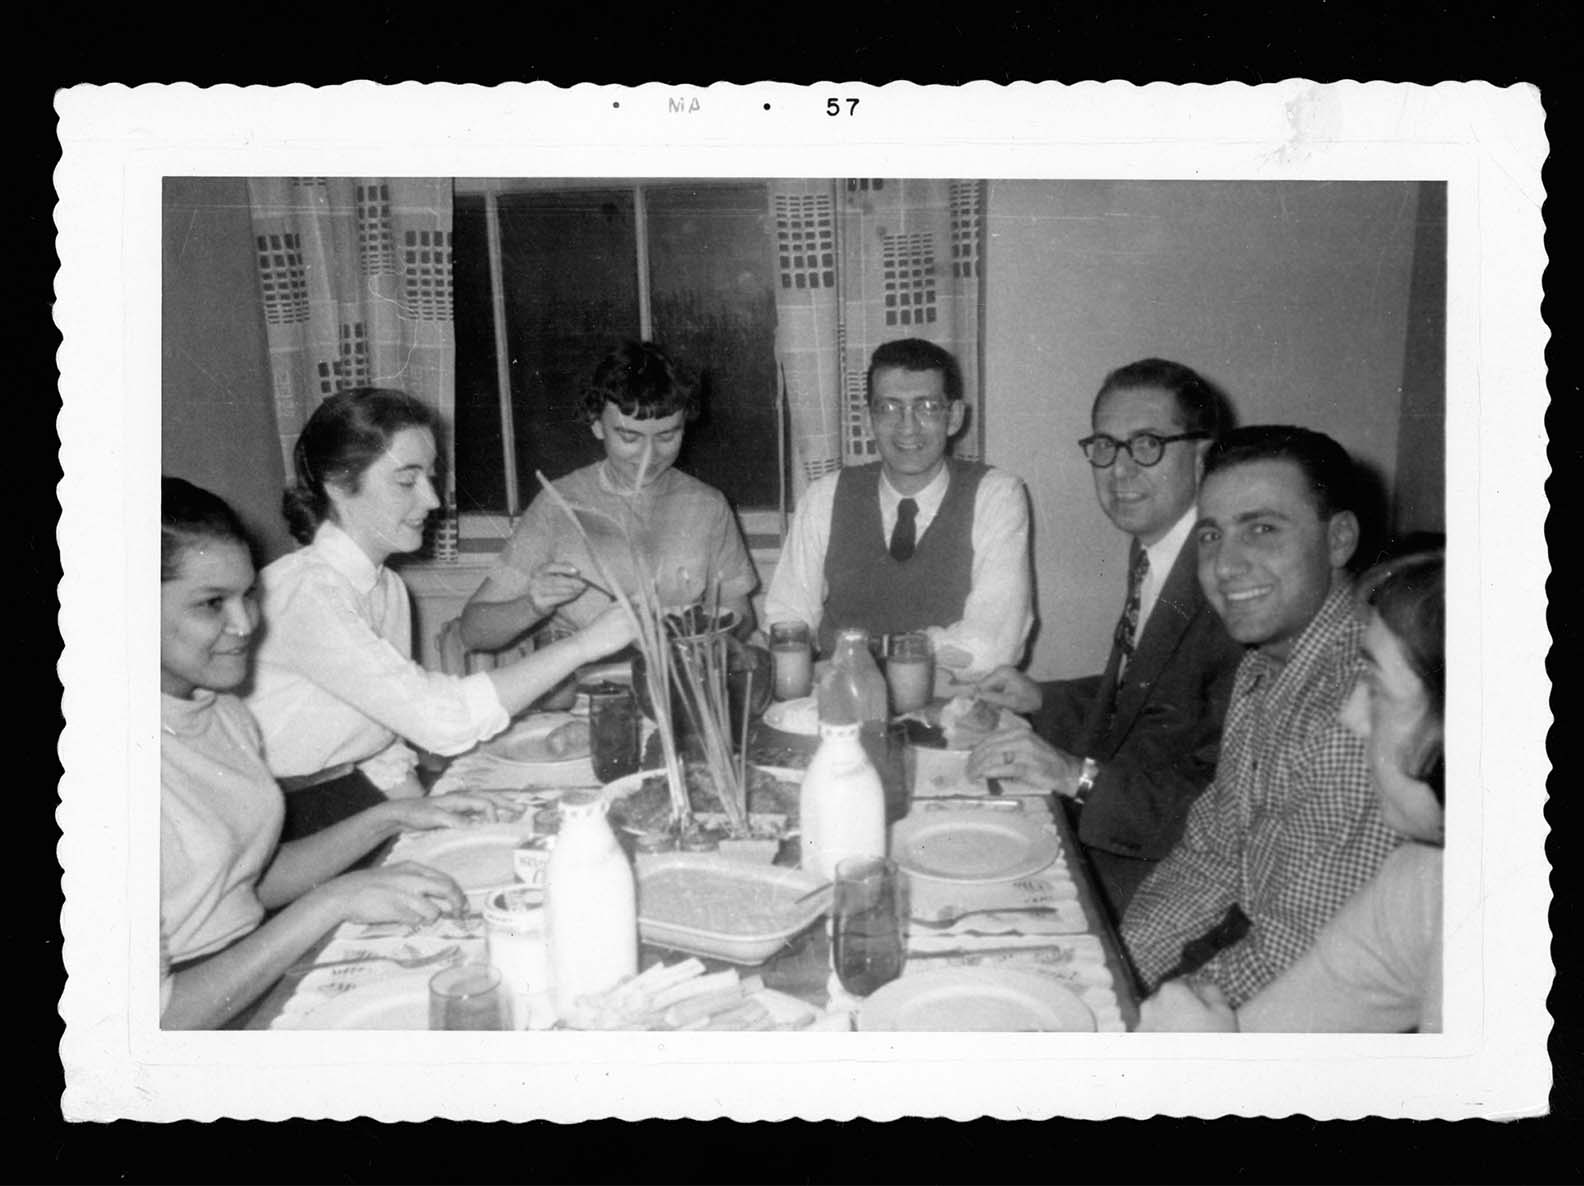 A family meal shared in the 1950s.